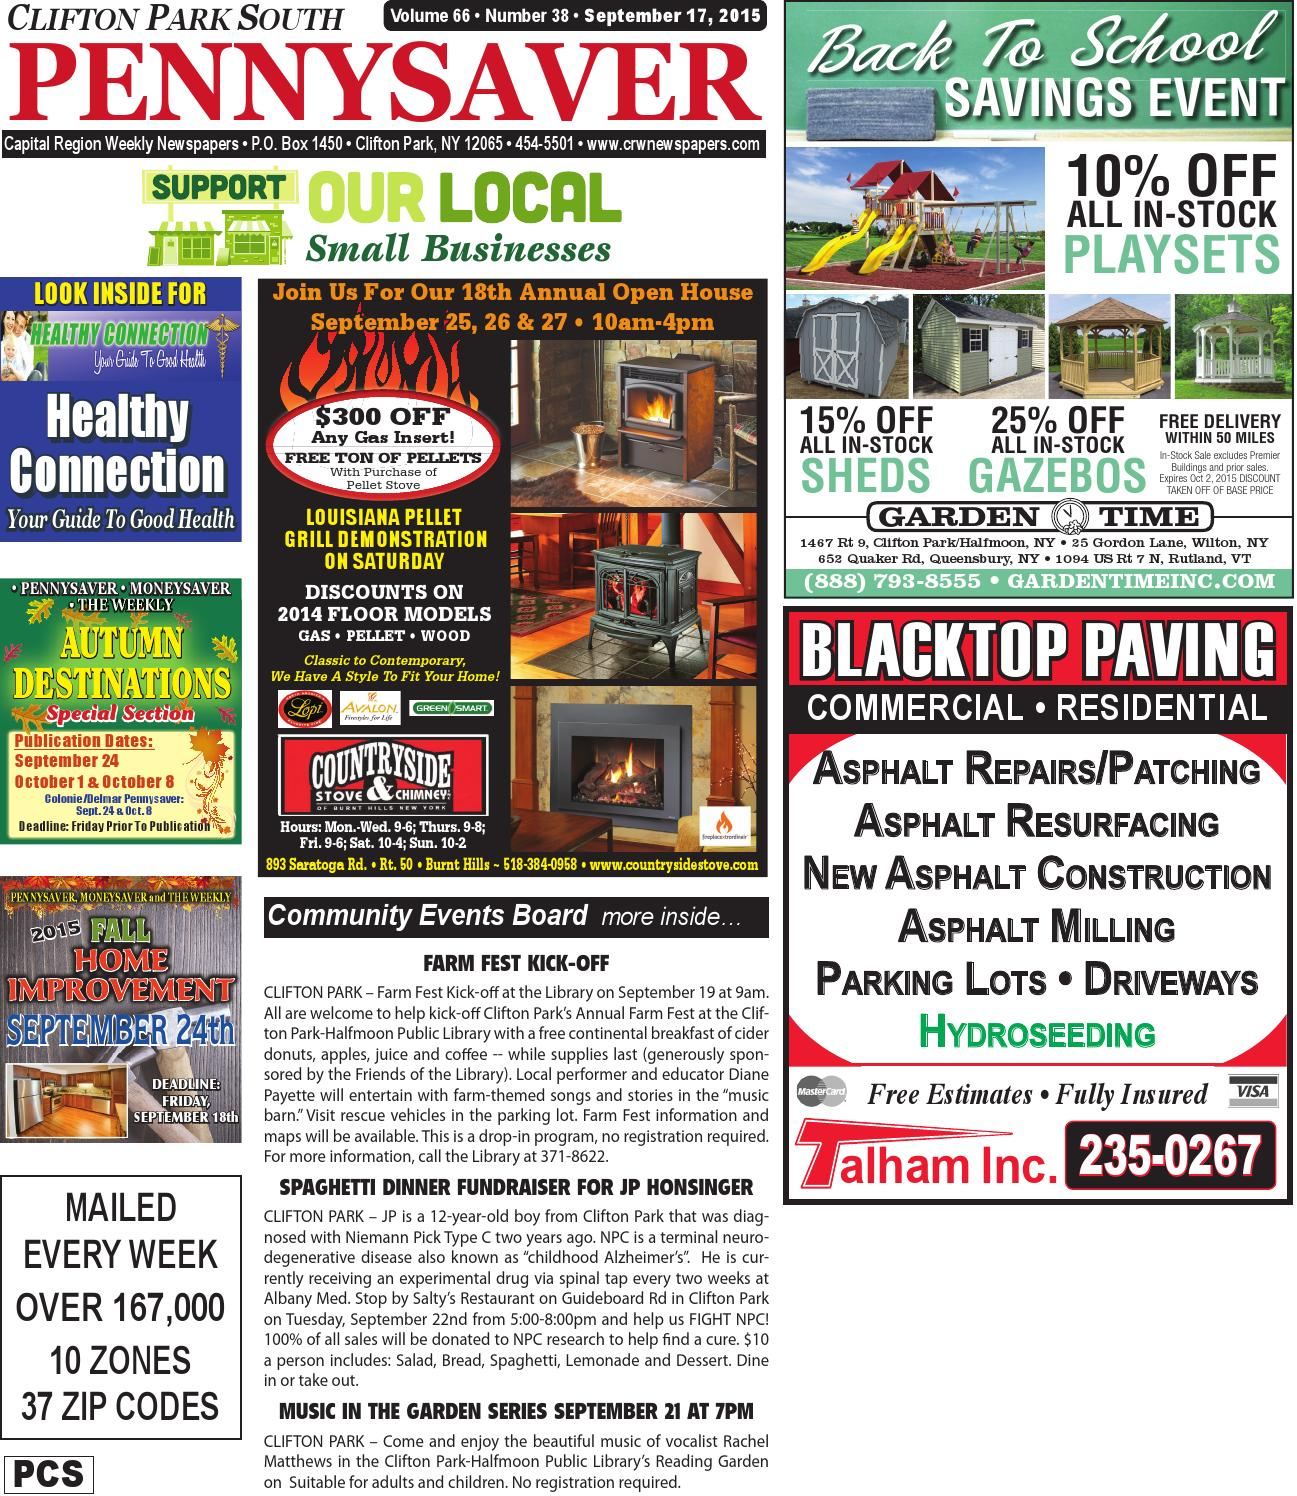 Clifton Park South Pennysaver 091715 by Capital Region Weekly